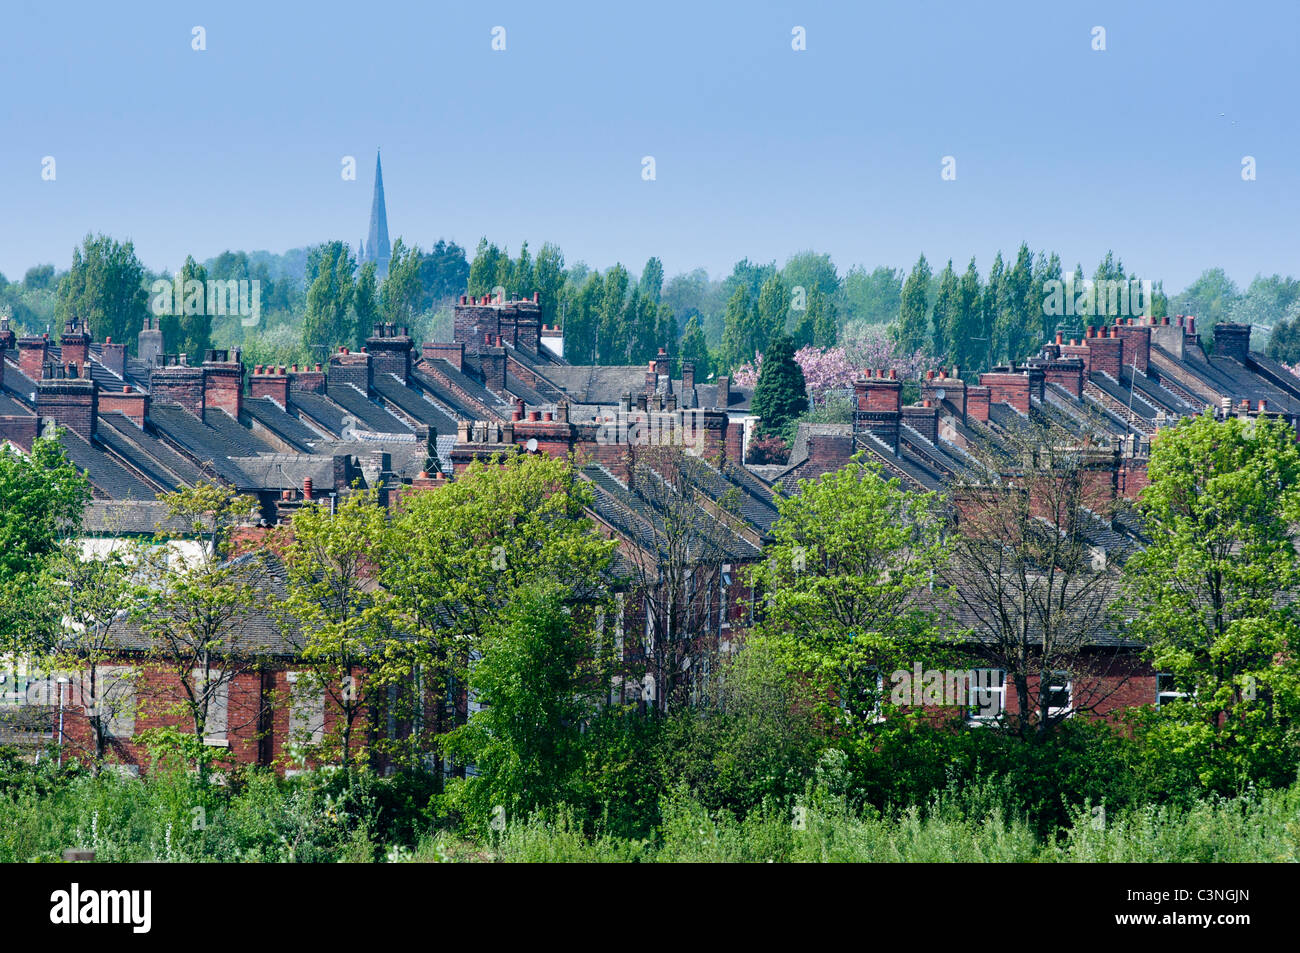 Terraces of houses near the city centre of Stoke on Trent, Staffordshire, UK - Stock Image